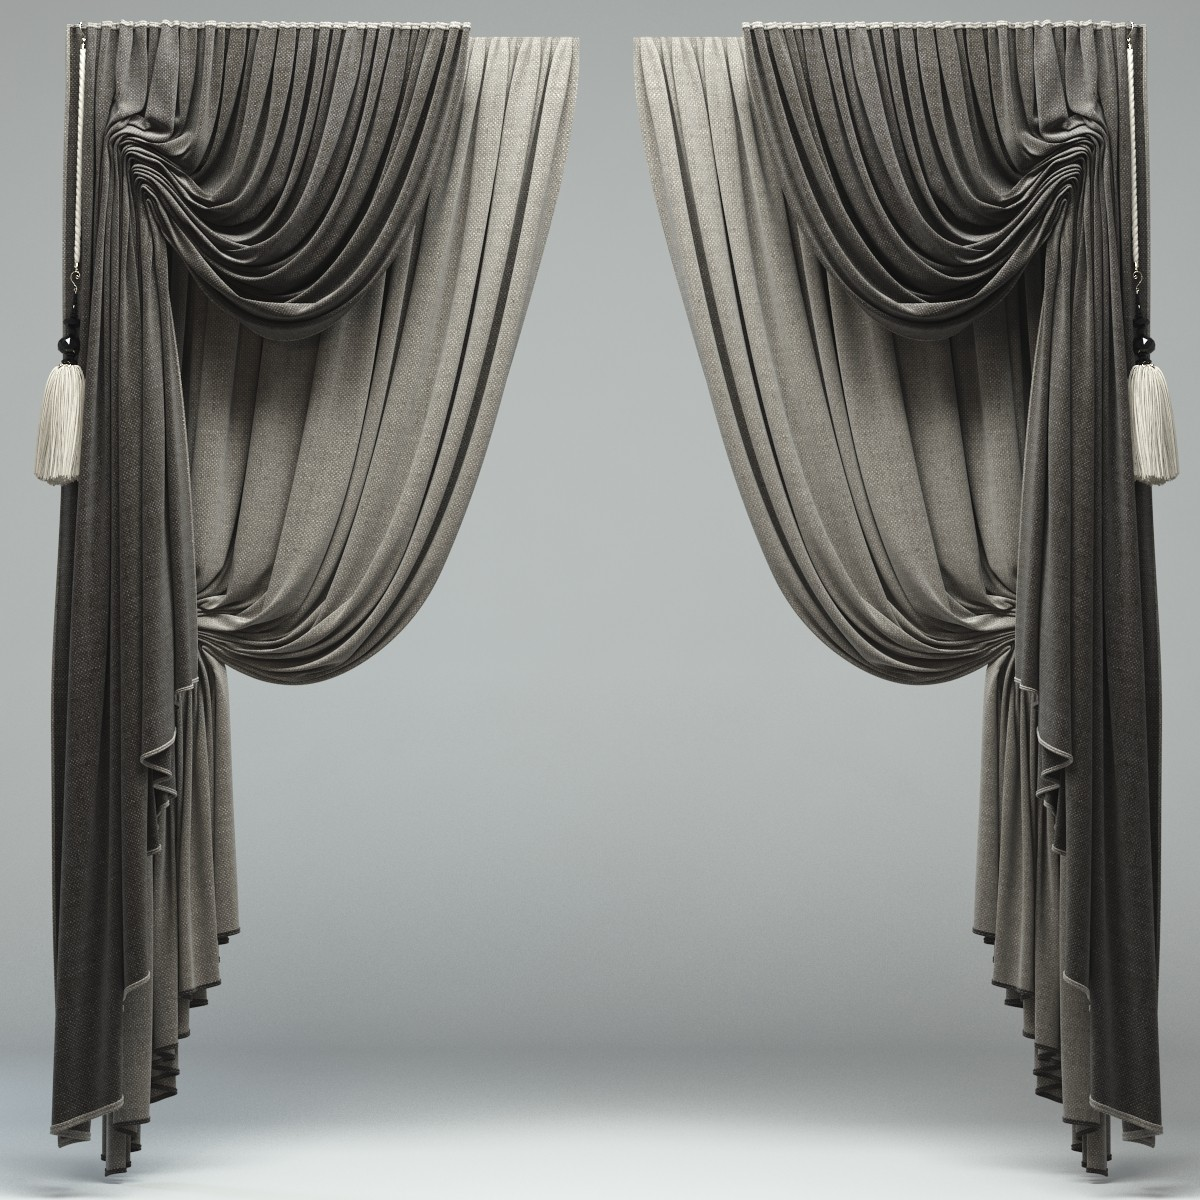 22 latest curtain designs patterns ideas for modern and classic interiors - Curtain new design ...